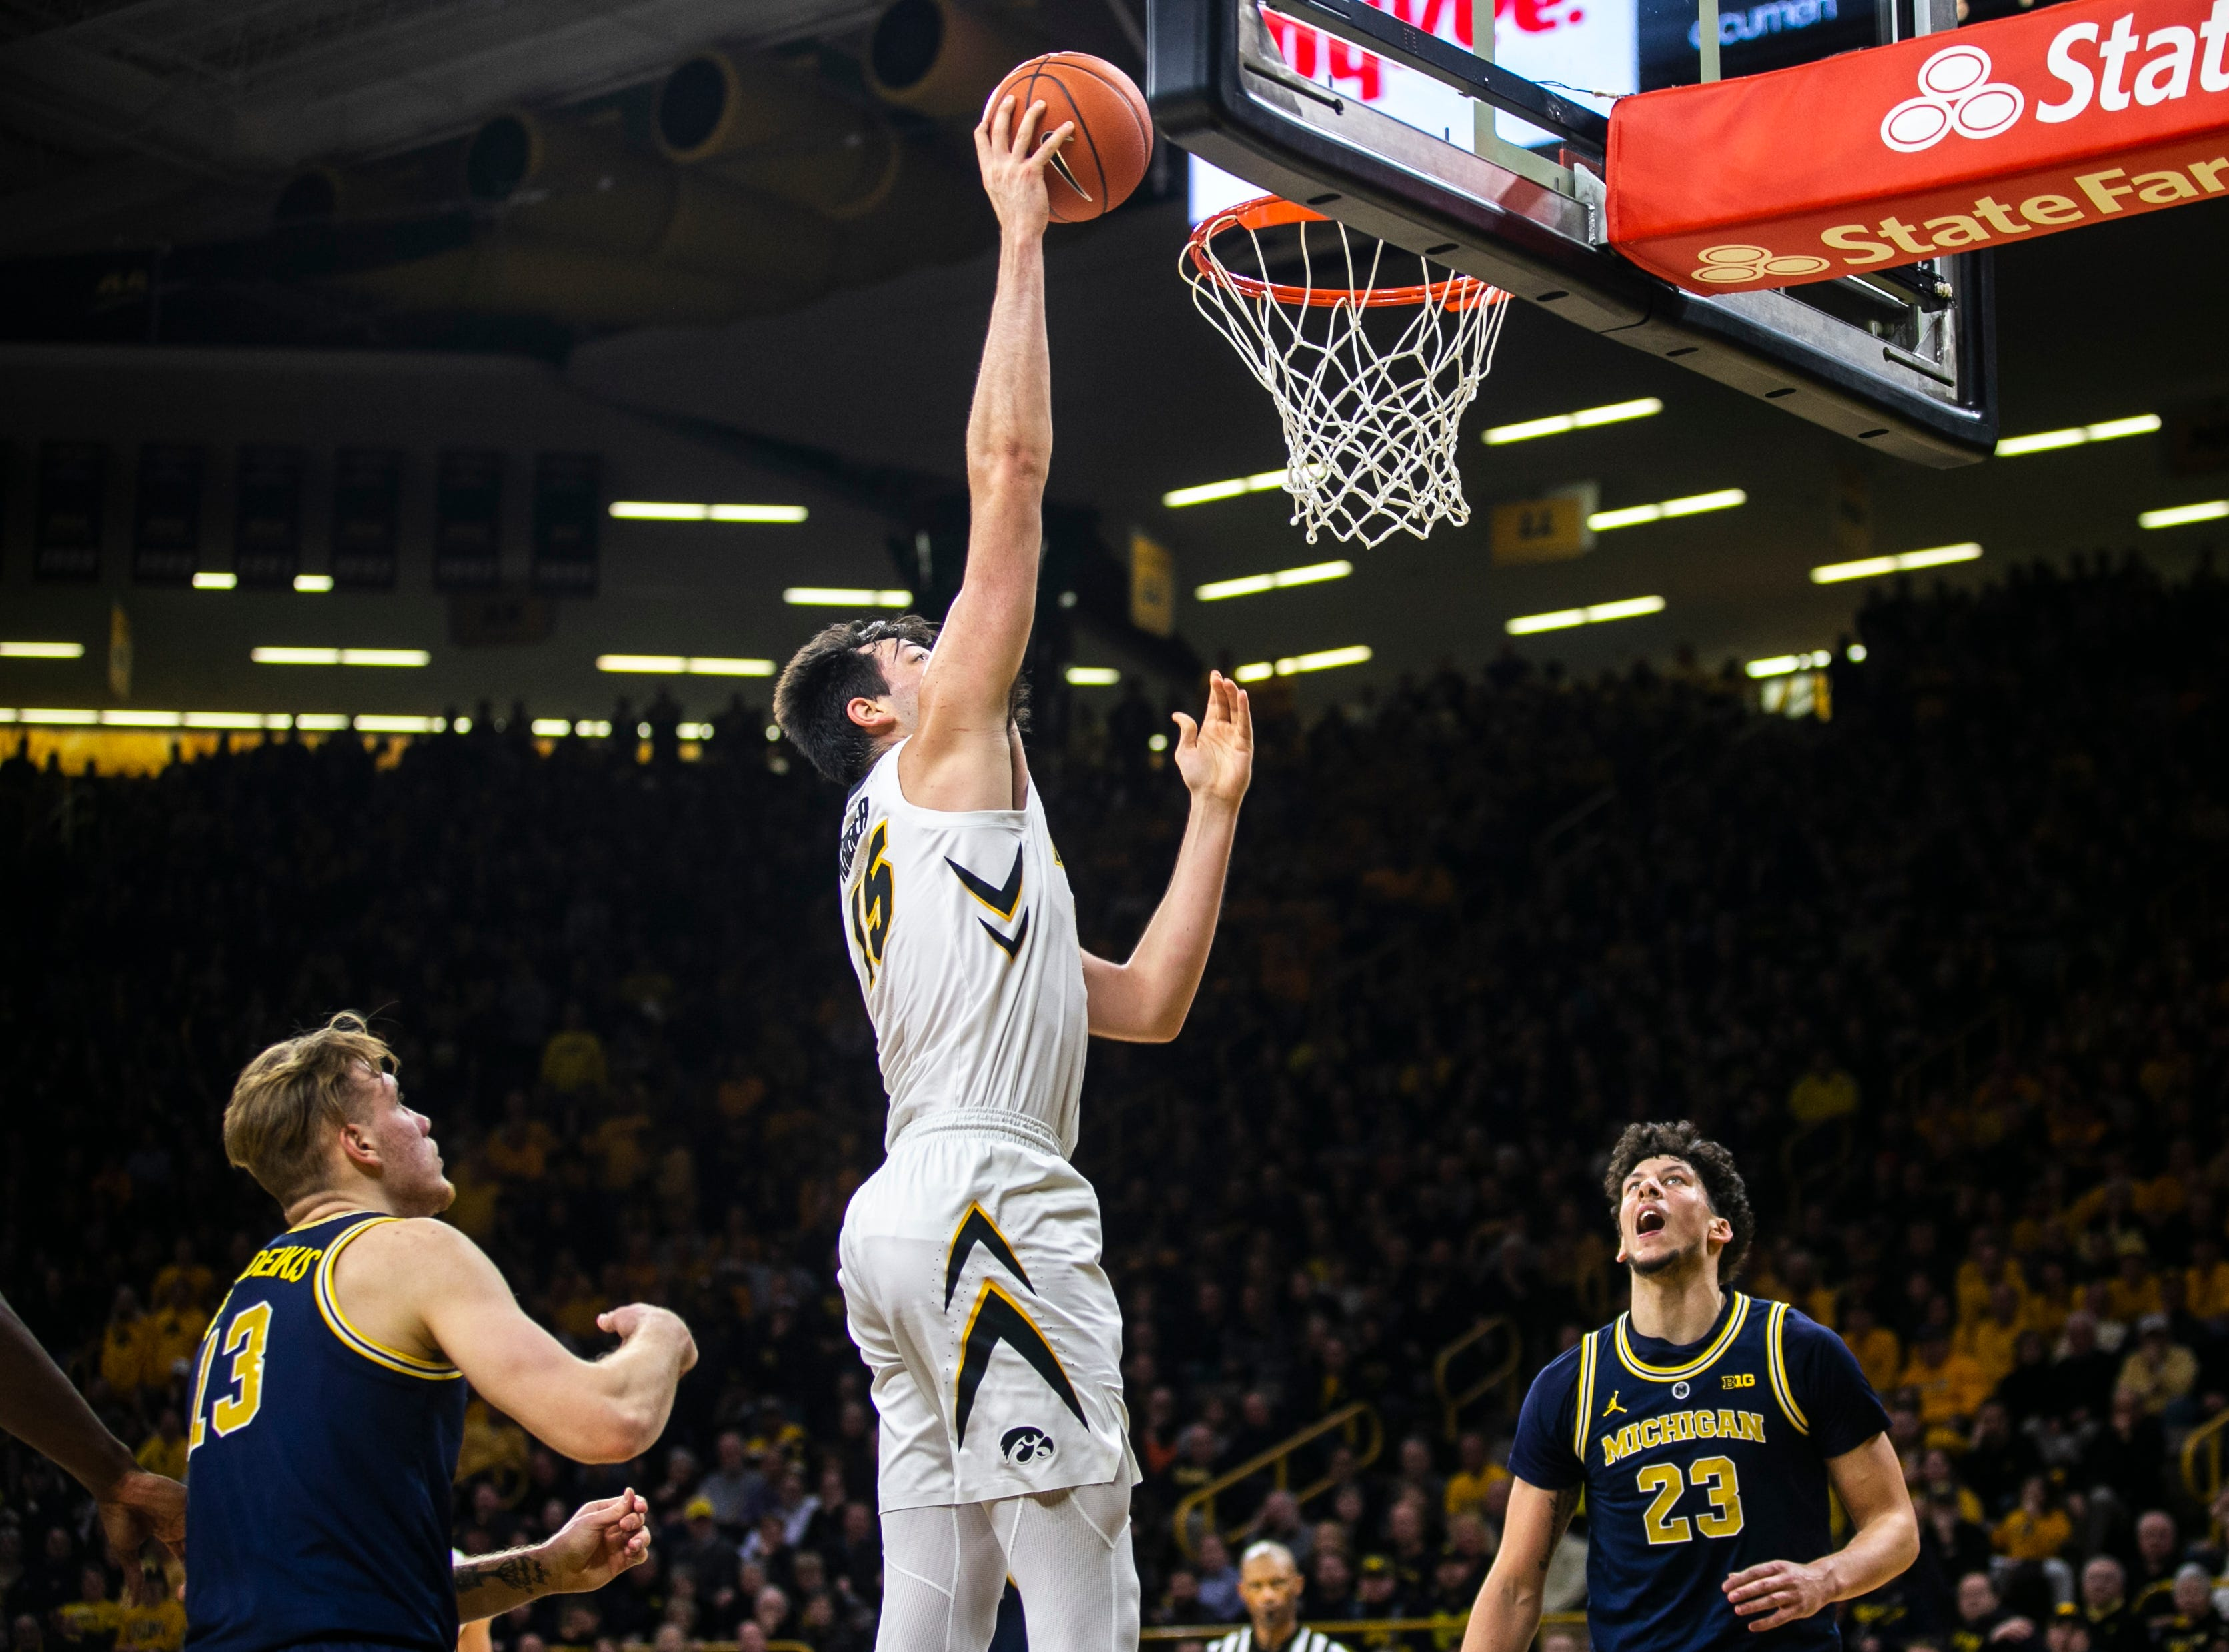 Iowa forward Ryan Kriener (15) makes a basket while Michigan forwards Ignas Brazdeikis (13) and Brandon Johns Jr. look on during a NCAA Big Ten Conference men's basketball game on Friday, Feb. 1, 2019, at Carver-Hawkeye Arena in Iowa City, Iowa.